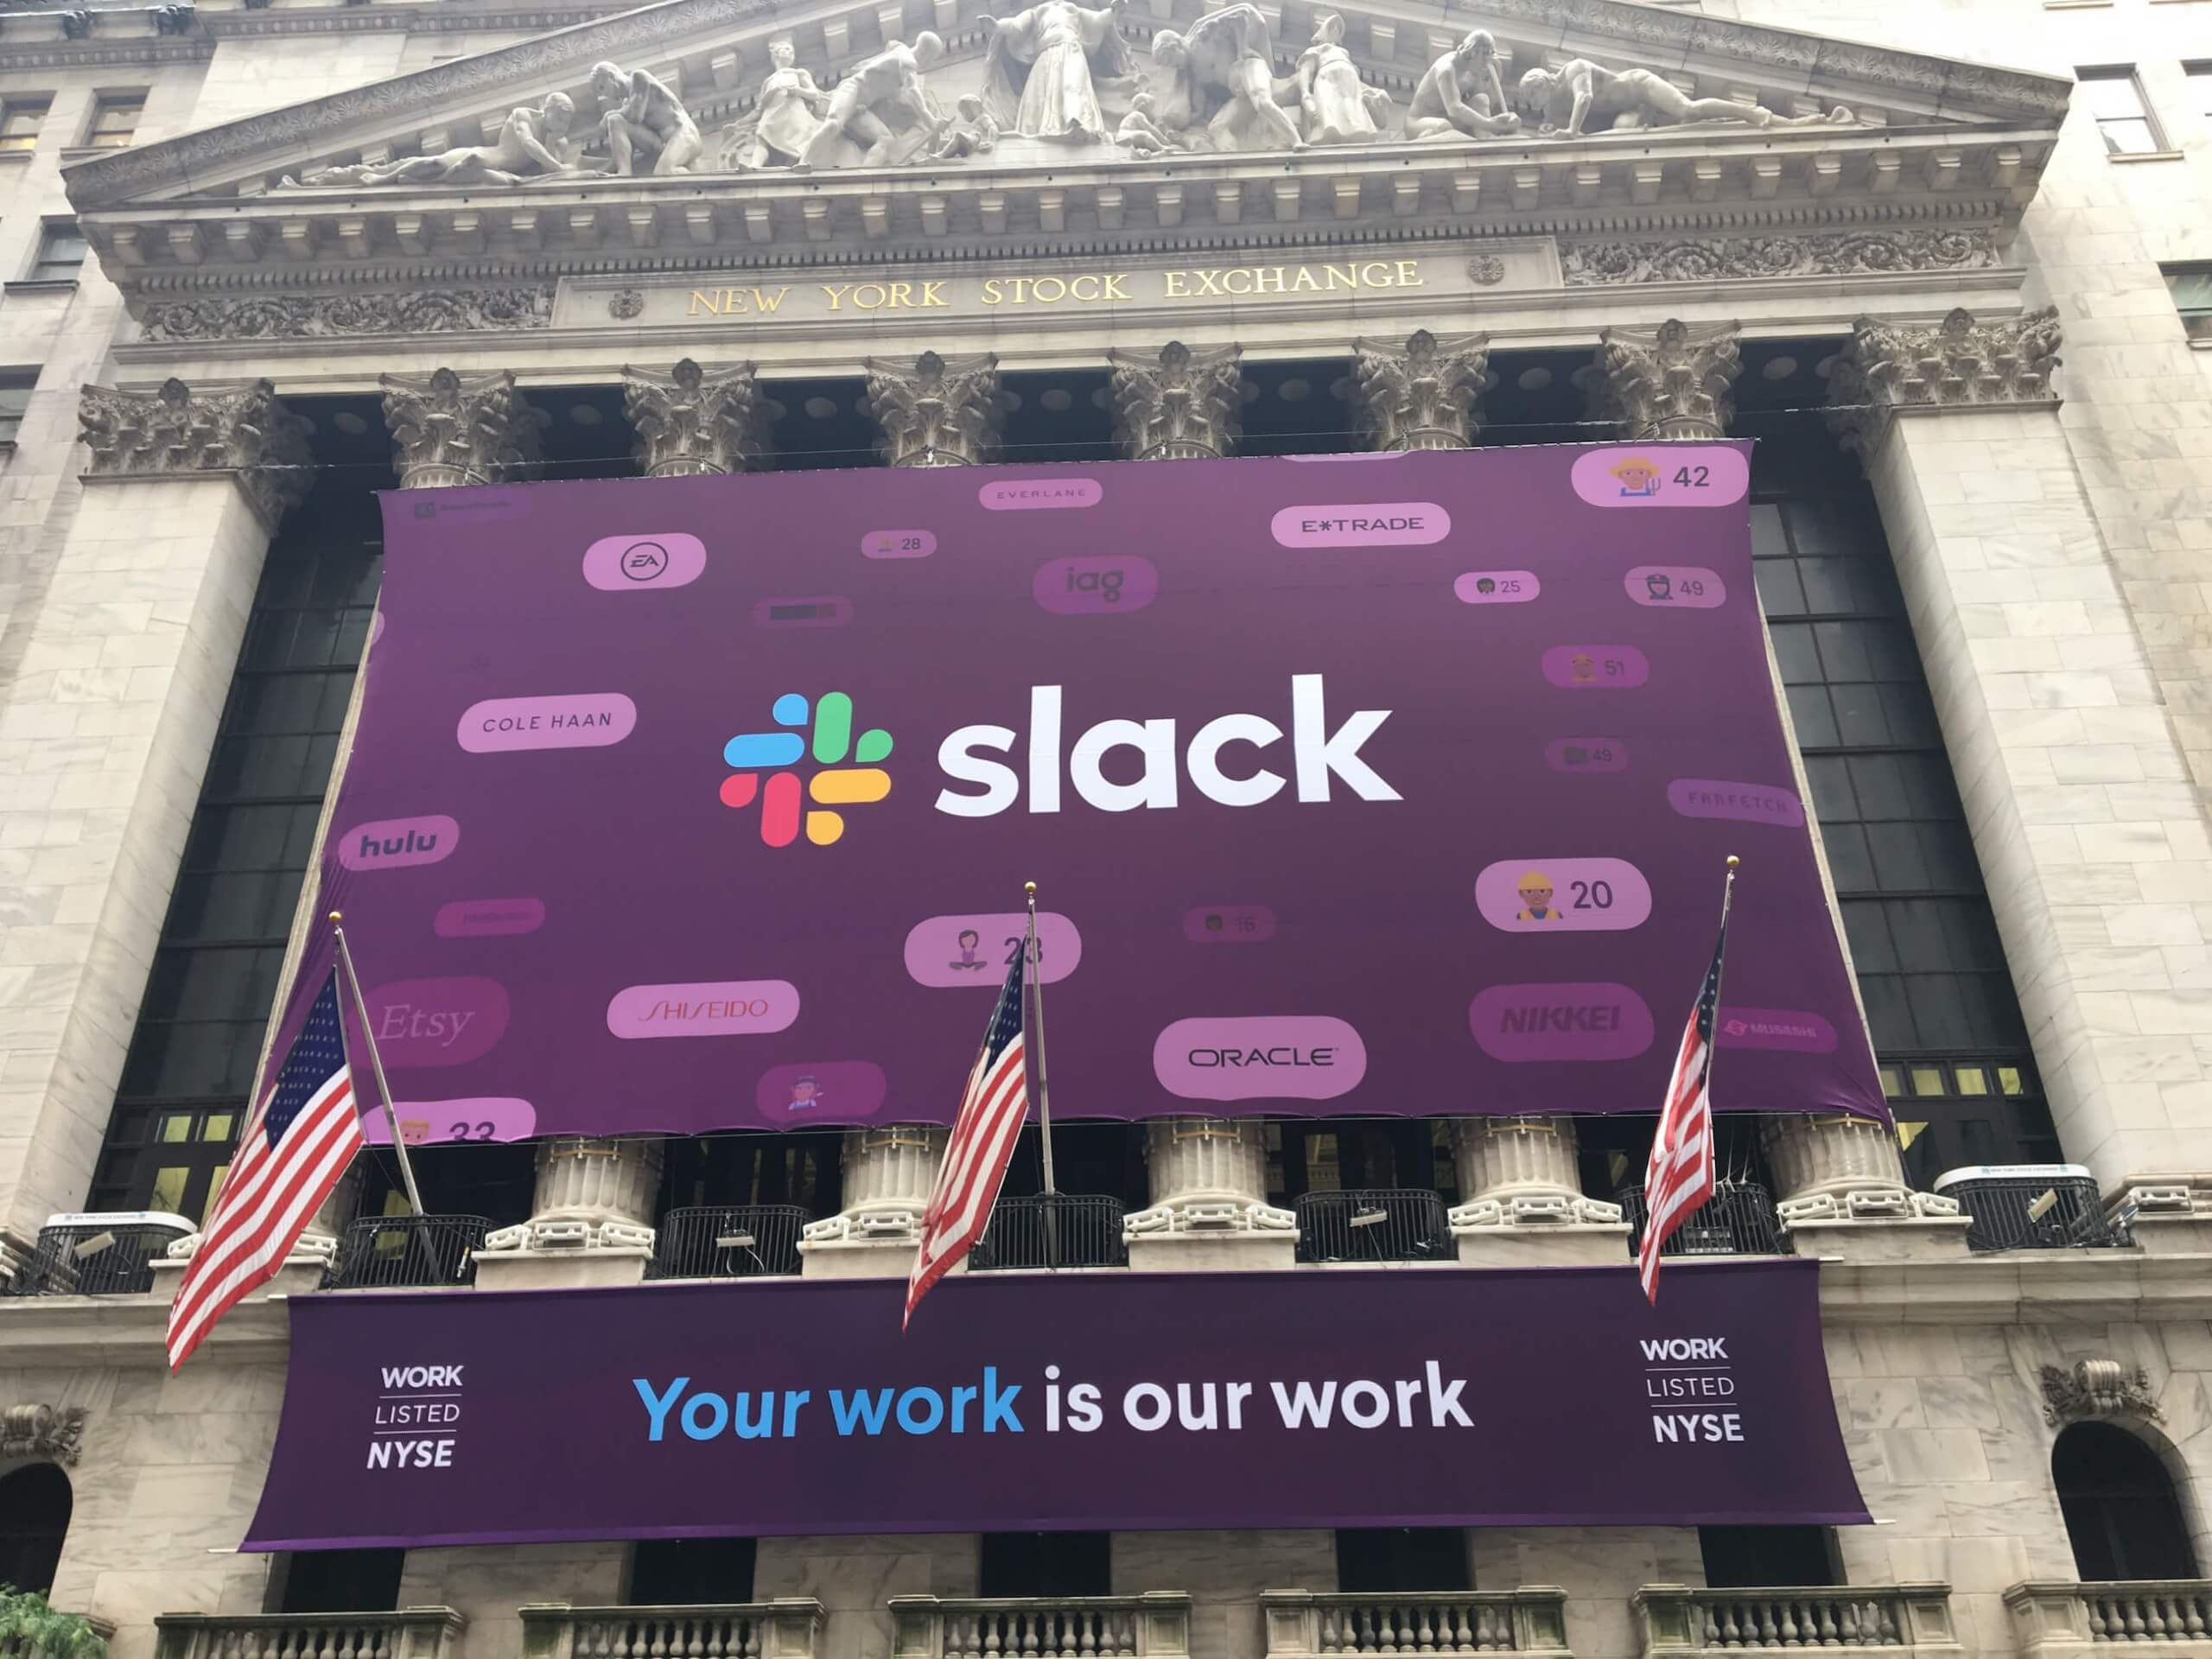 Slack secures 350,000 users as it becomes IBM's official communications app